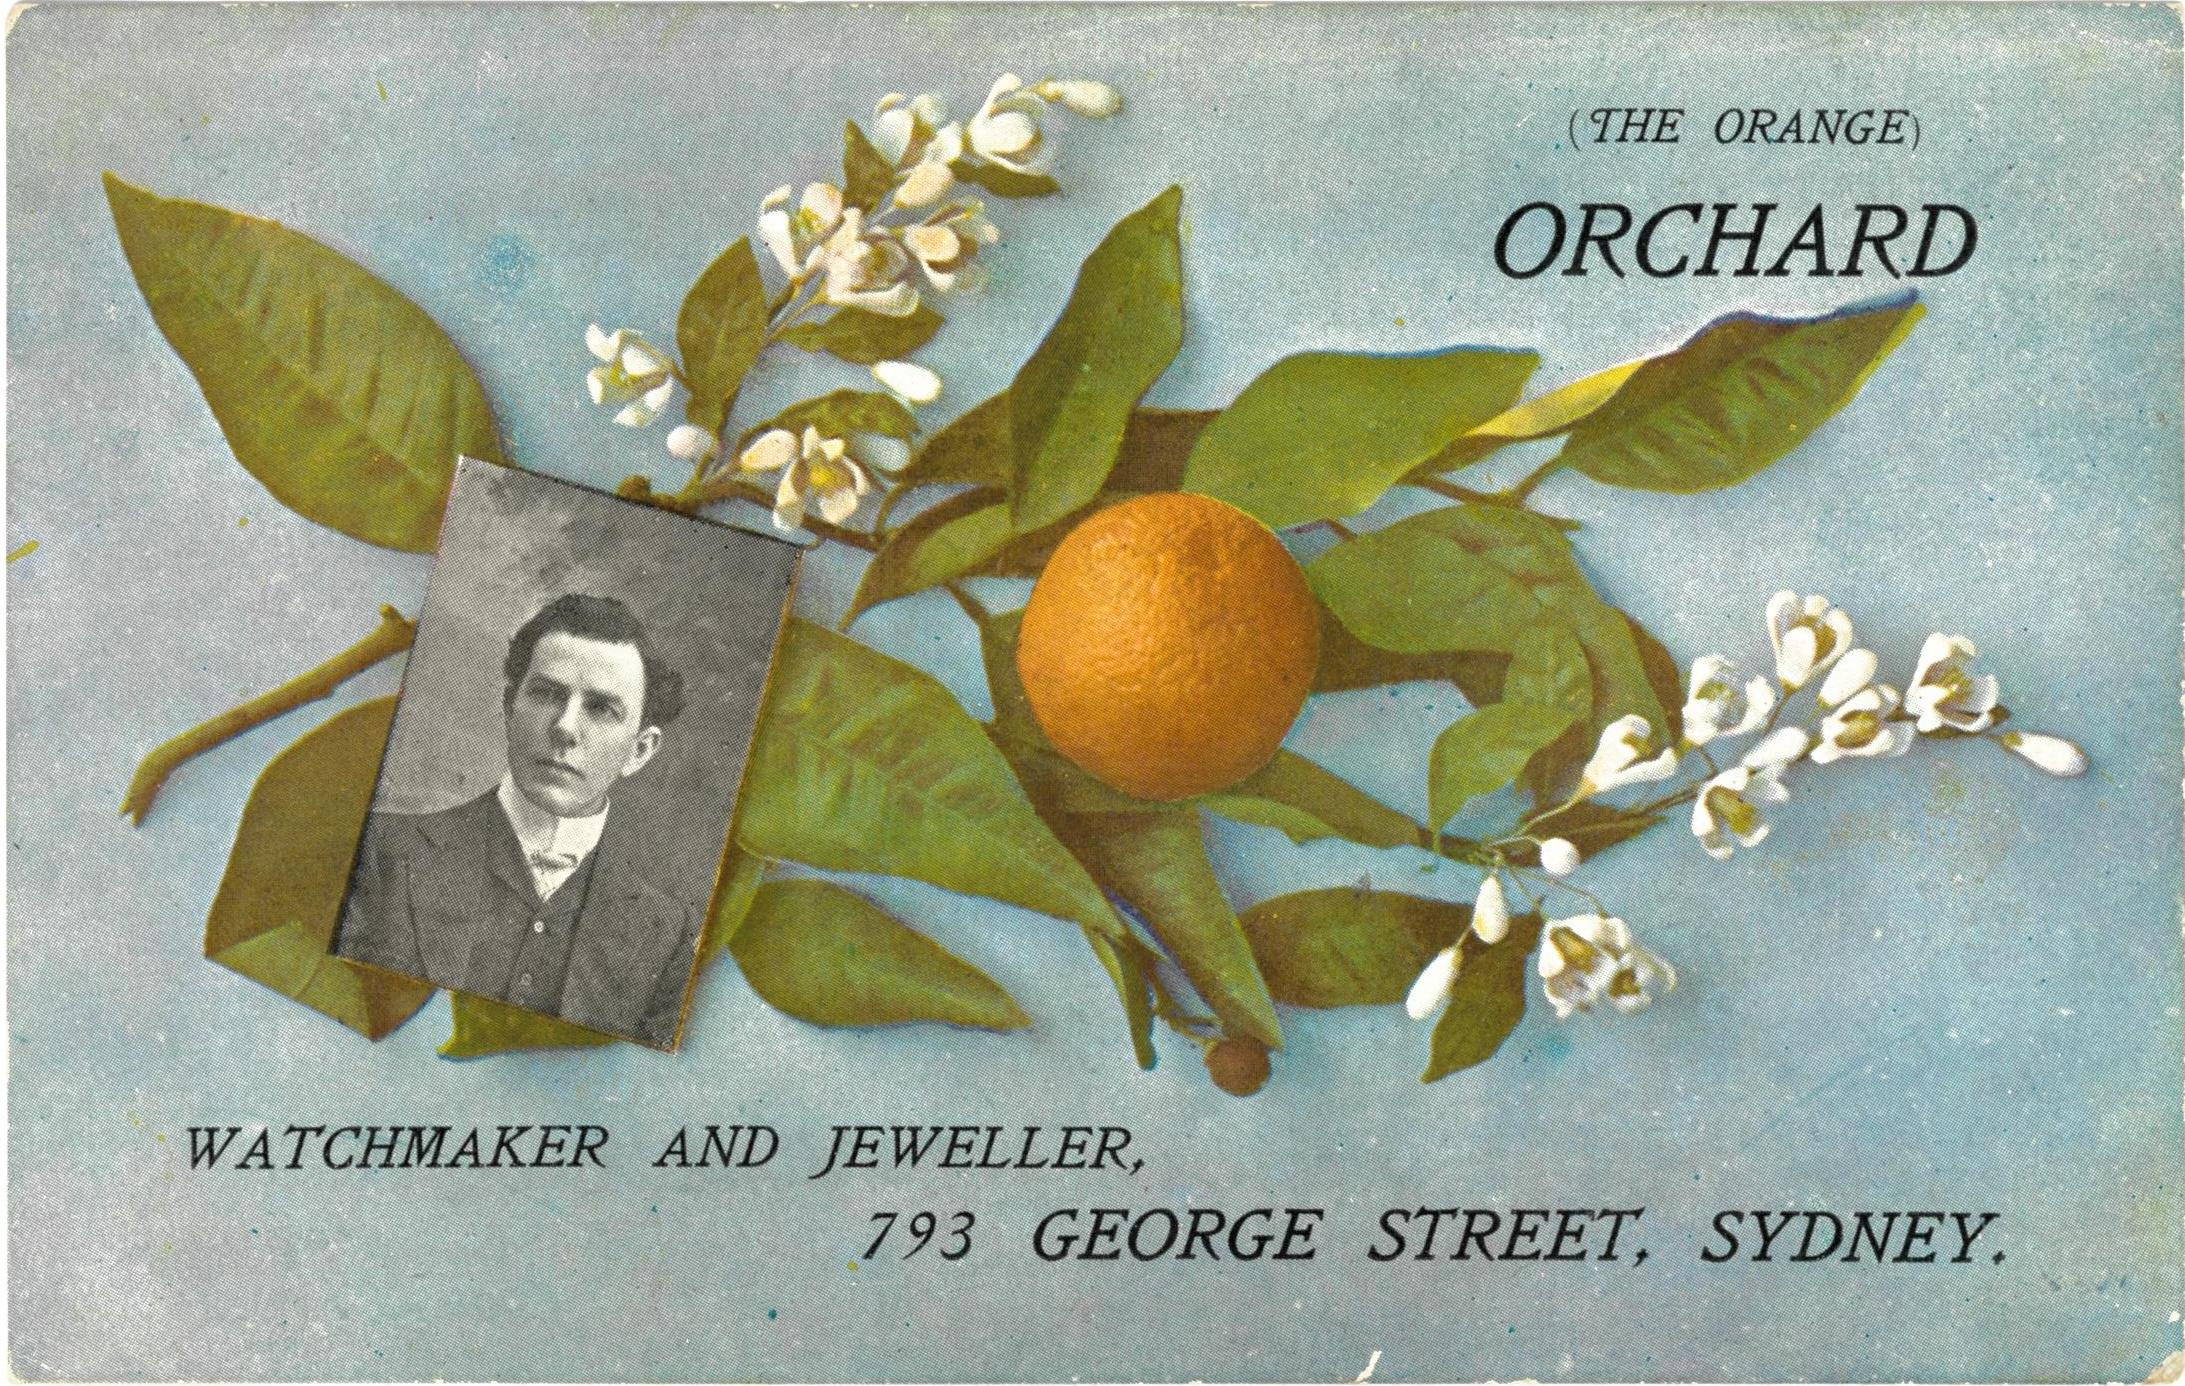 (The Orange) Orchard. Watchmaker and Jeweller, 793 George Street, Sydney / artist unknown